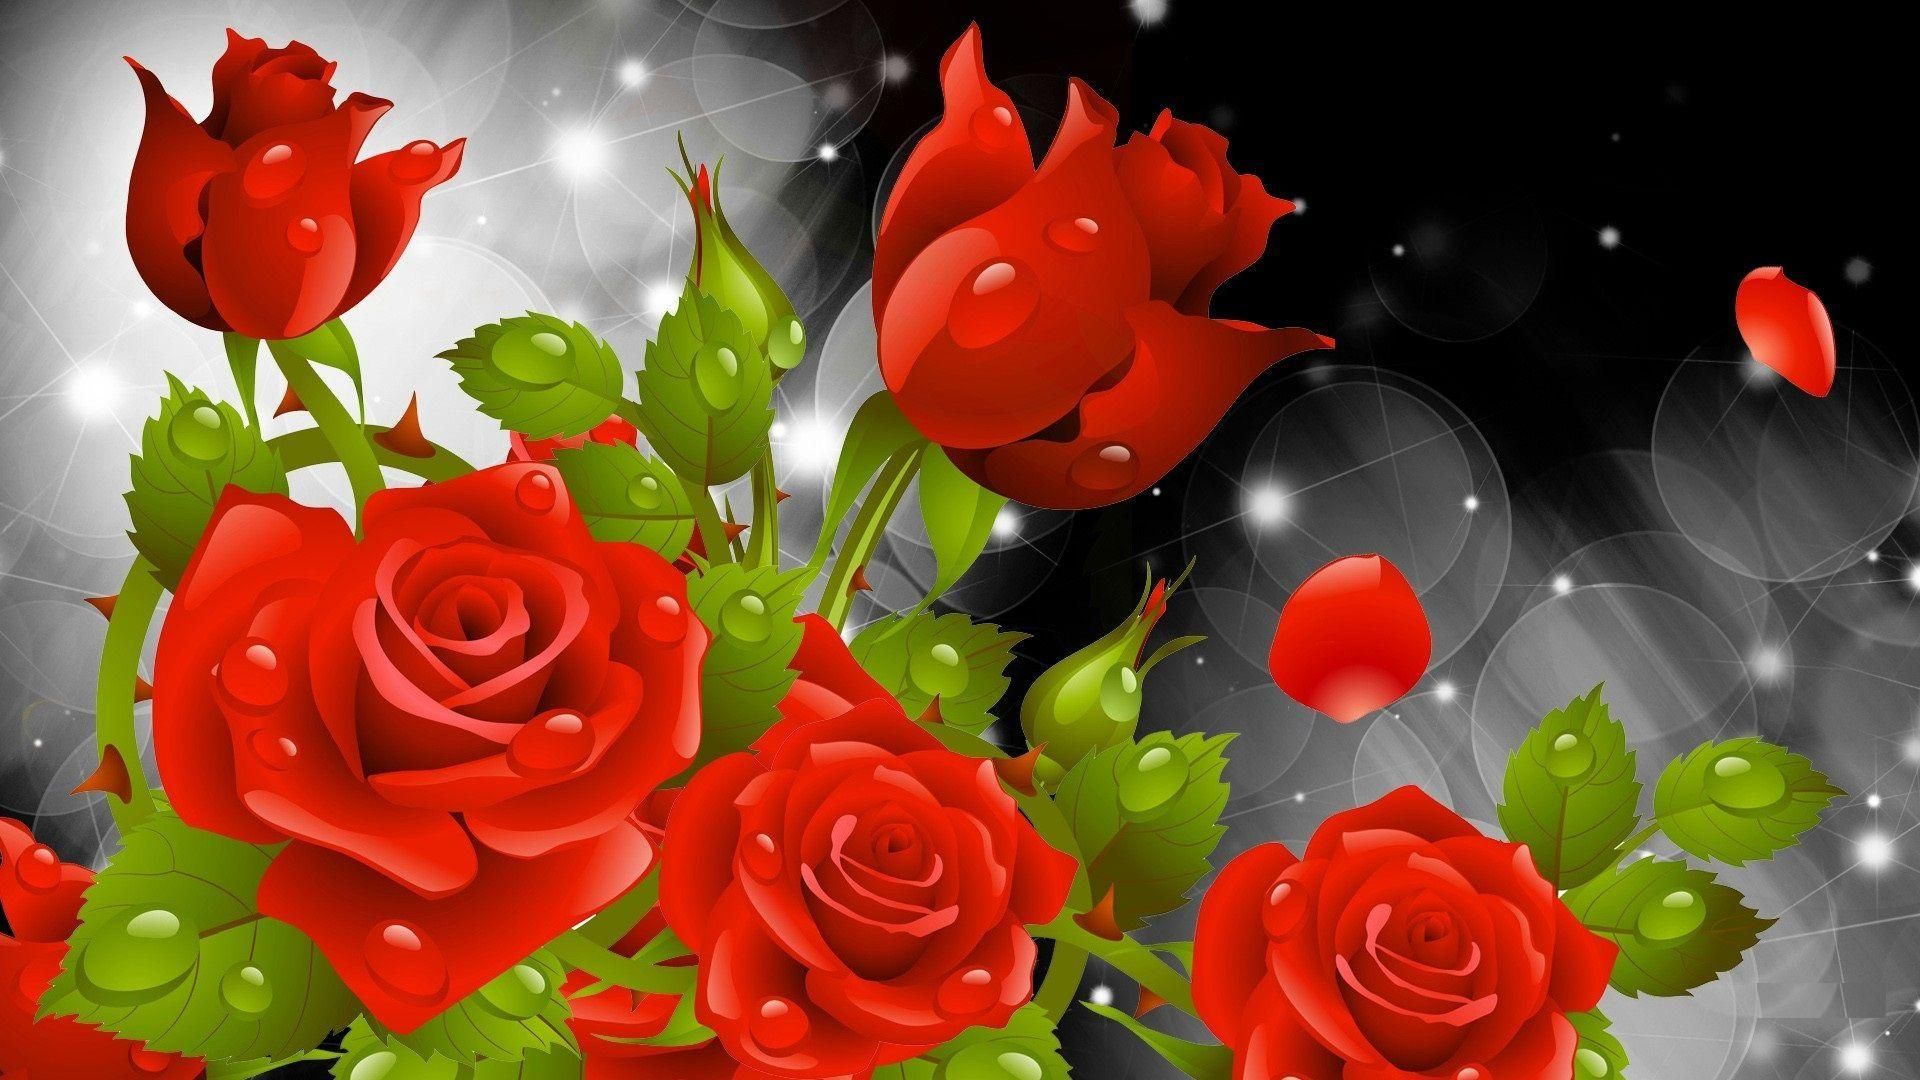 Beautiful Good Morning Images And Pictures Full Hd In 2020 Flower Wallpaper Rose Flower Wallpaper Red Flower Wallpaper